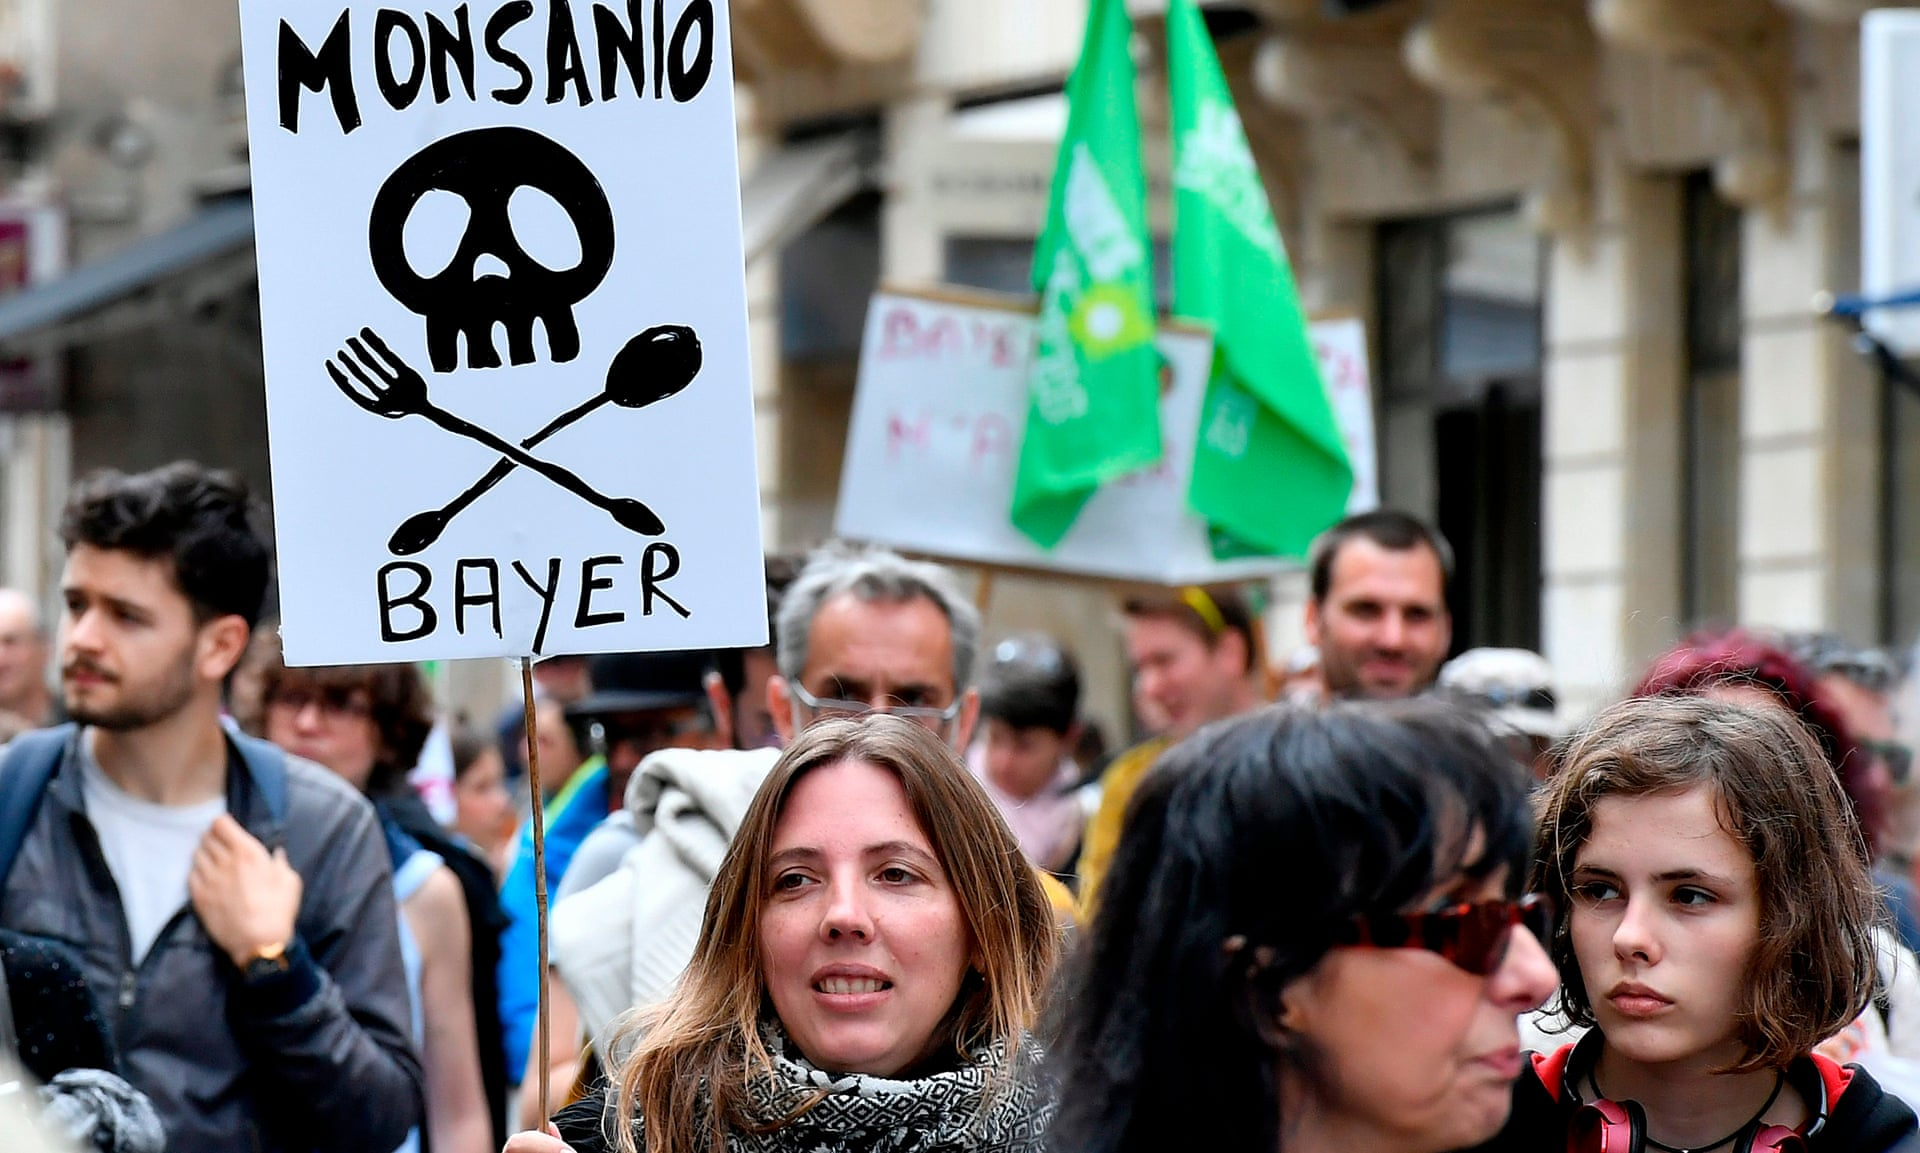 Demonstrators march against pesticide maker Monsanto in Bordeaux, France, last year.  Photograph: Georges Gobet/AFP/Getty Images